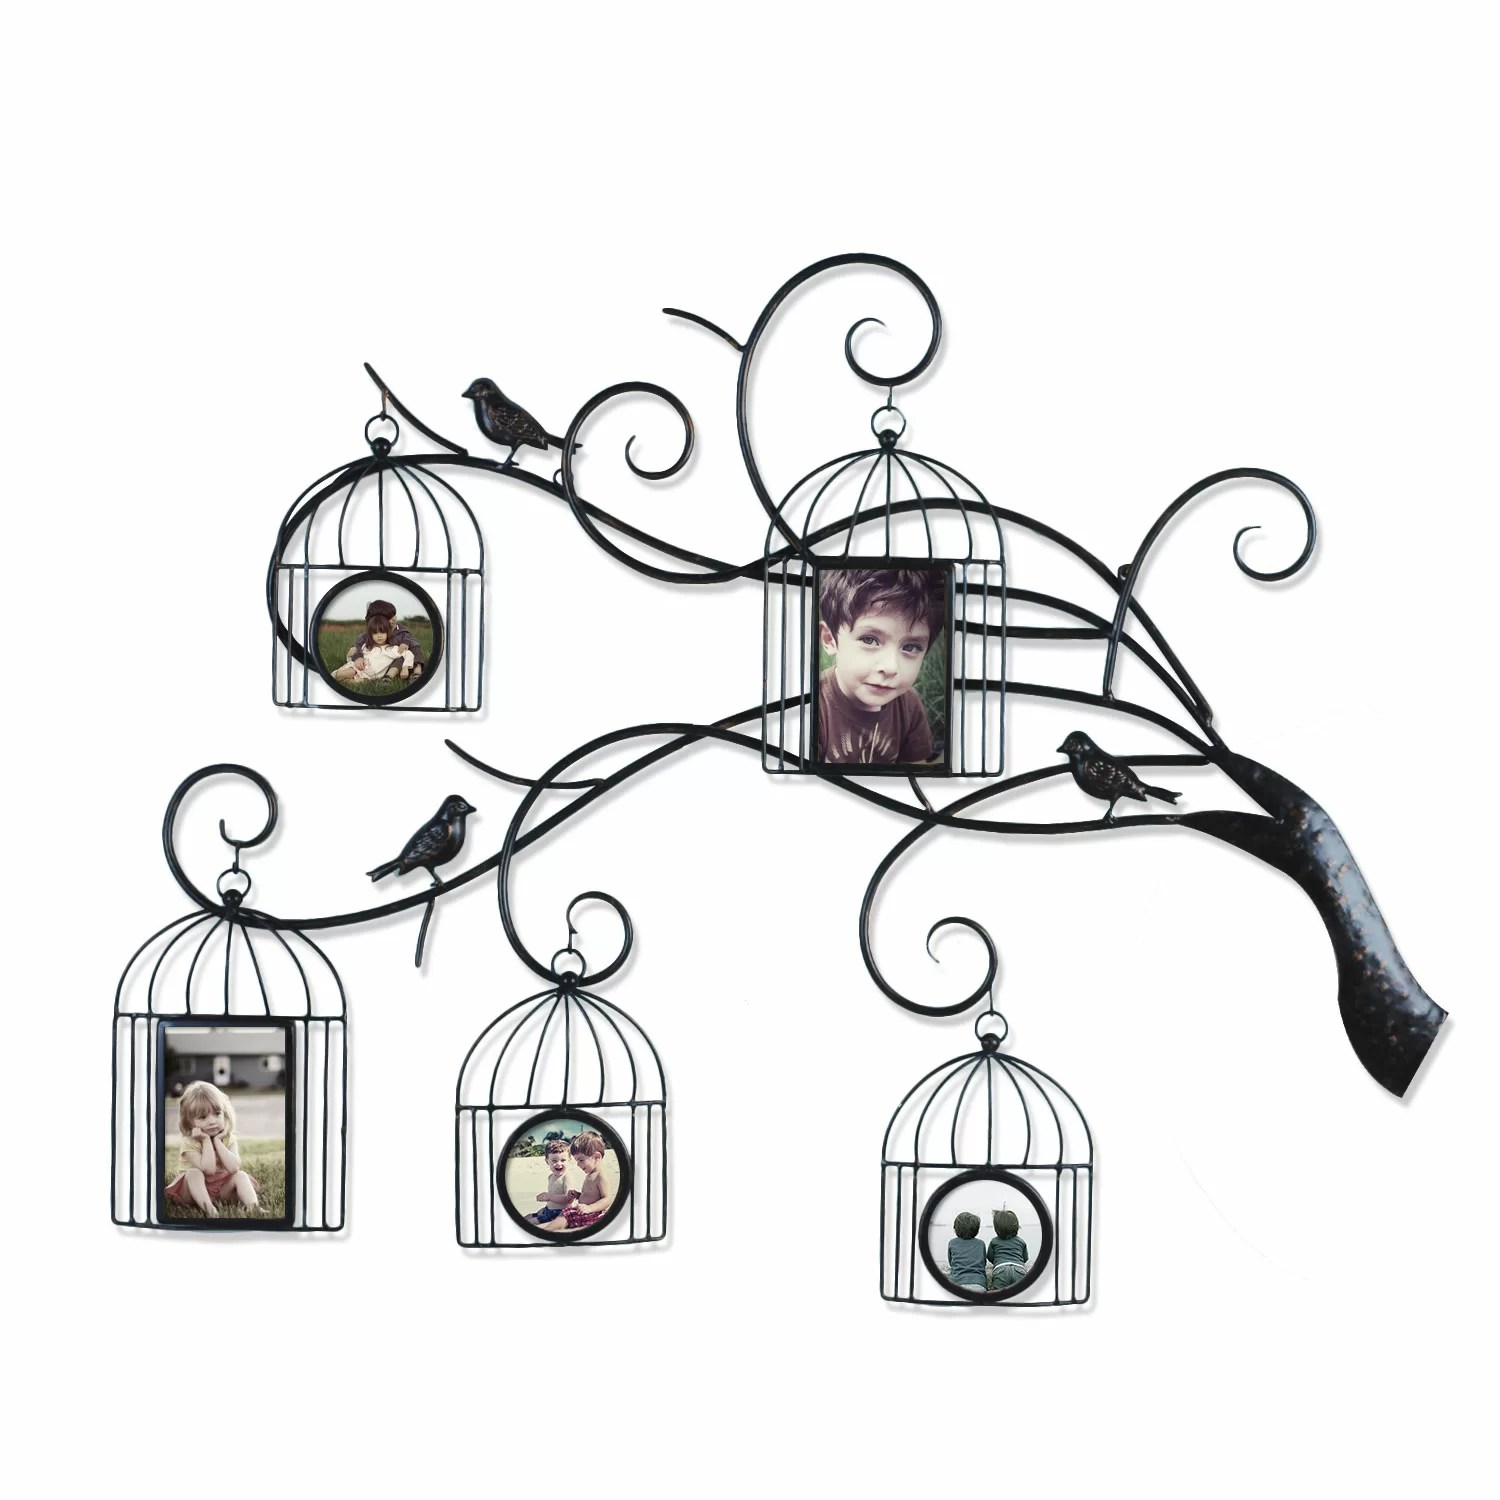 Adecotrading Collage Wall Hanging 5 Opening Family Tree